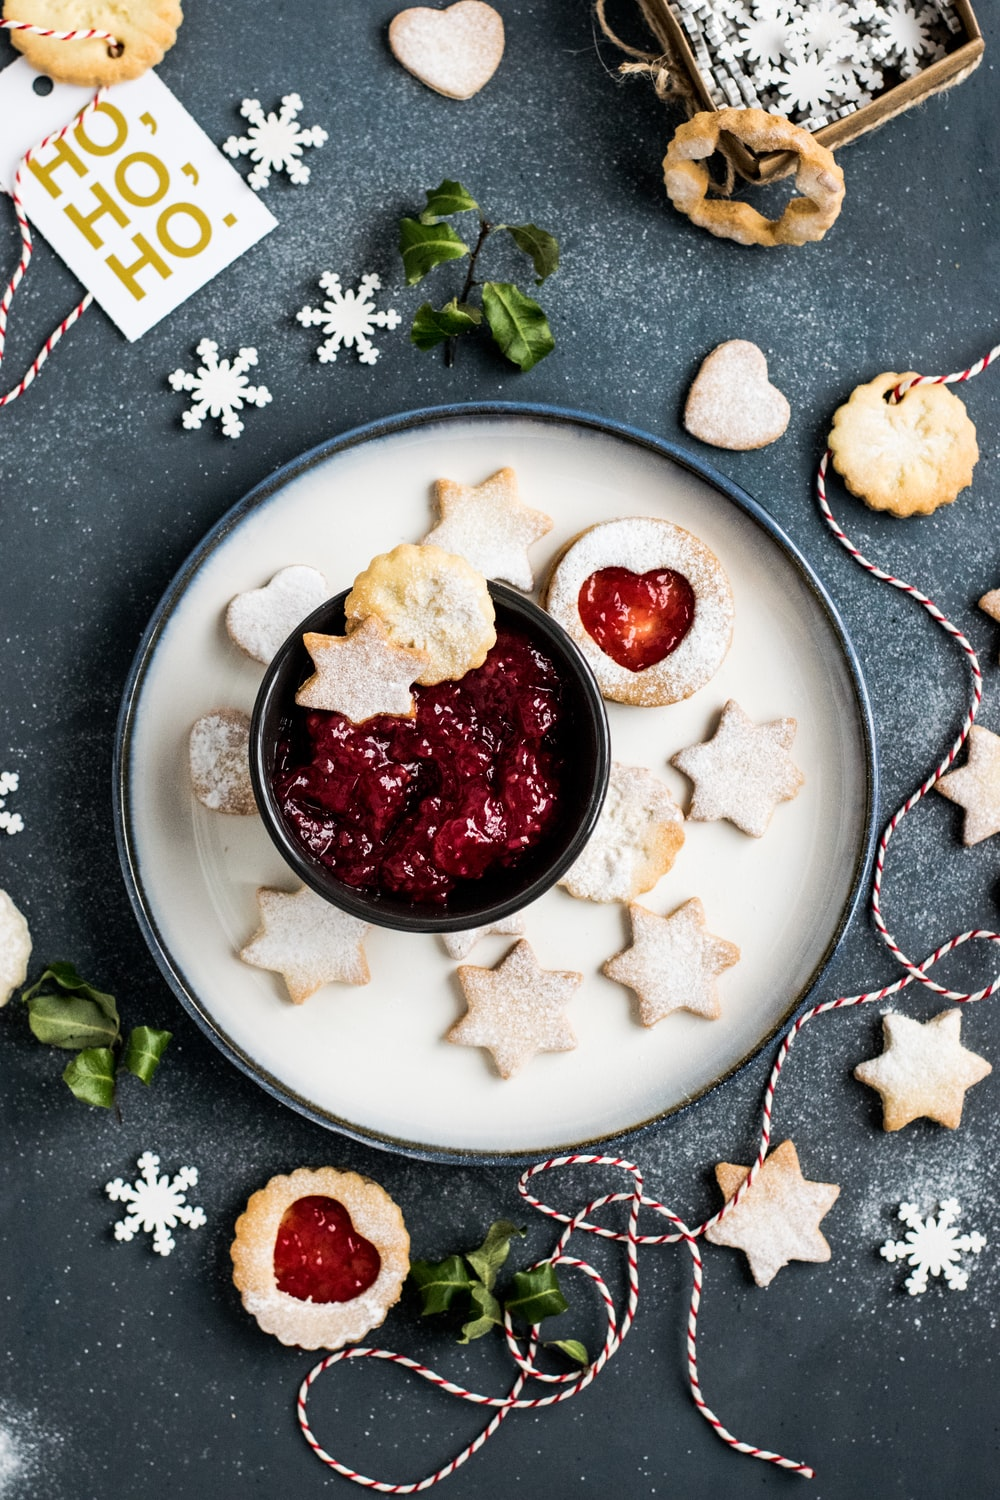 strawberry jam with star biscuits on plate